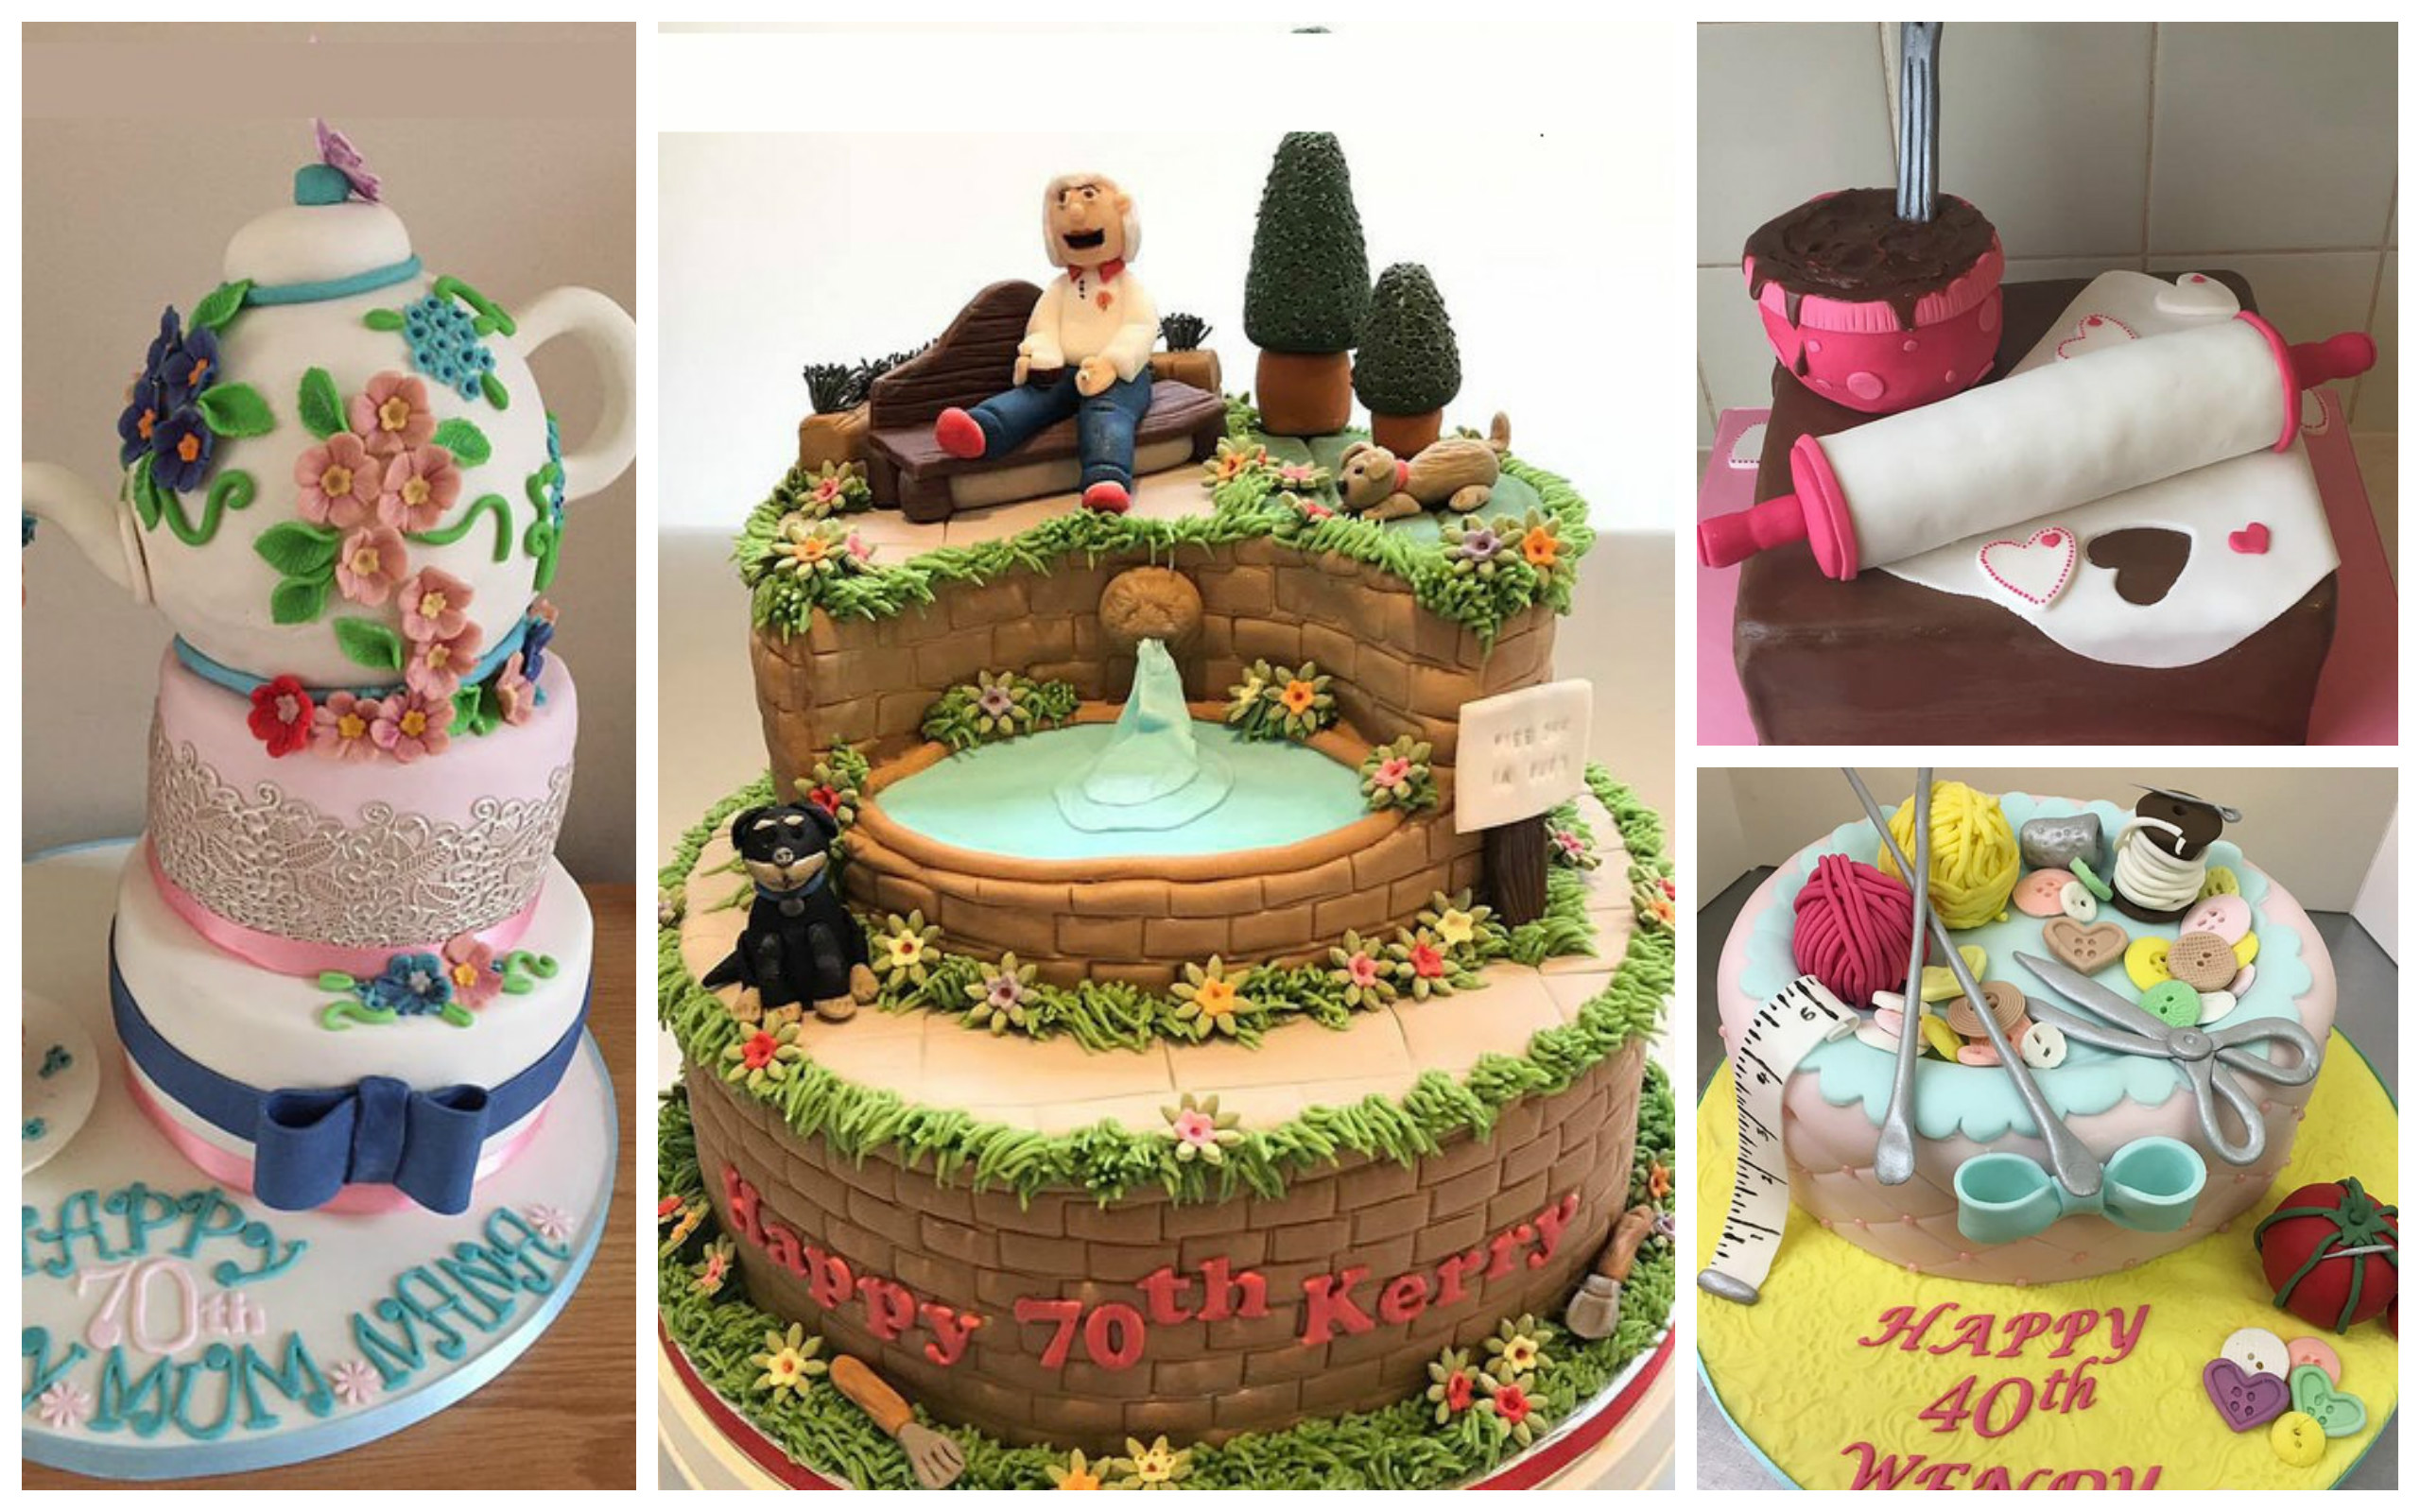 Cake Design Competition : Competition: Artist of the World s Number 1 Cake - Page 10 ...